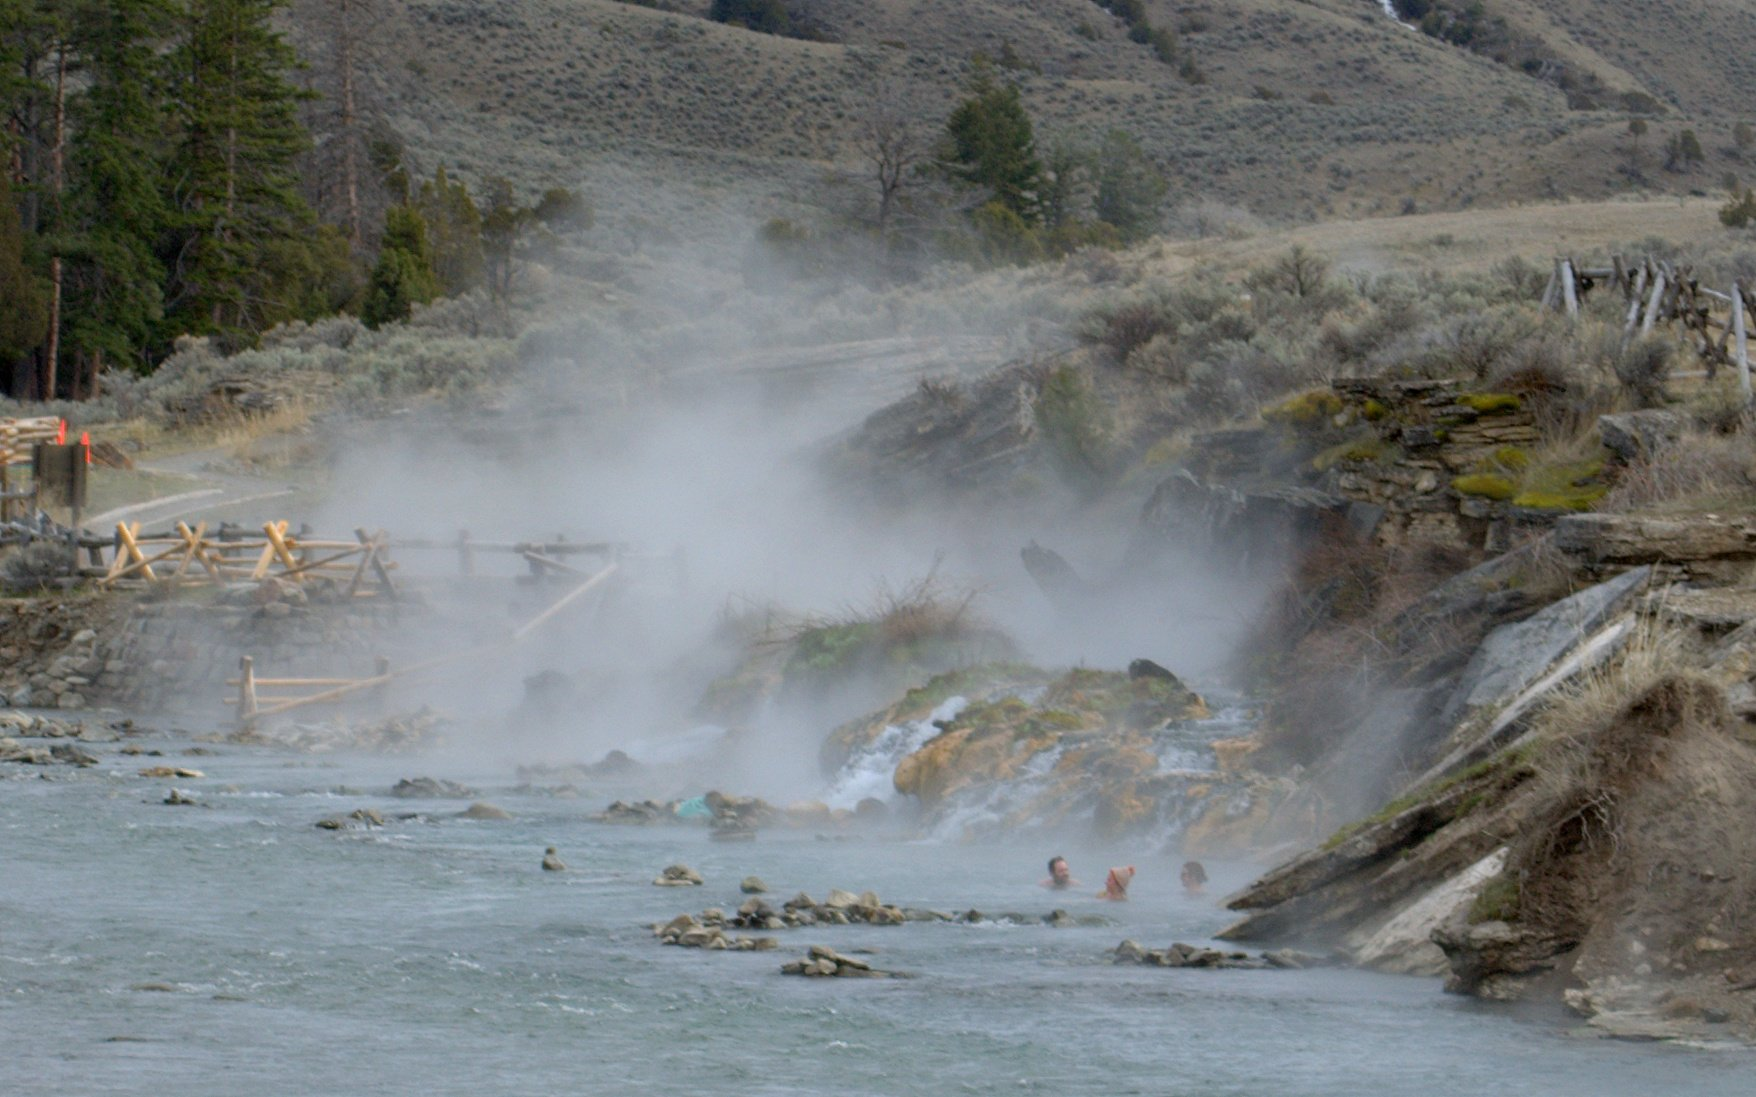 Boiling River - Sasquatch The Bus